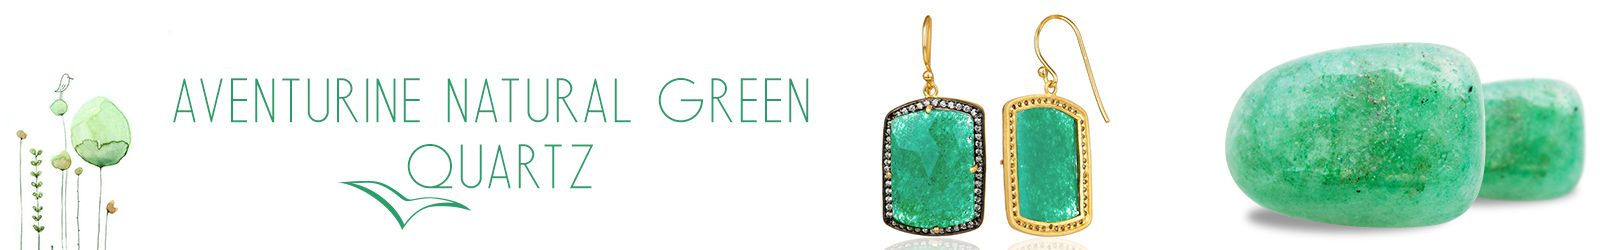 Wholesale Aventurine Green Quartz Gemstone Jewelry Manufacturer in Jaipur